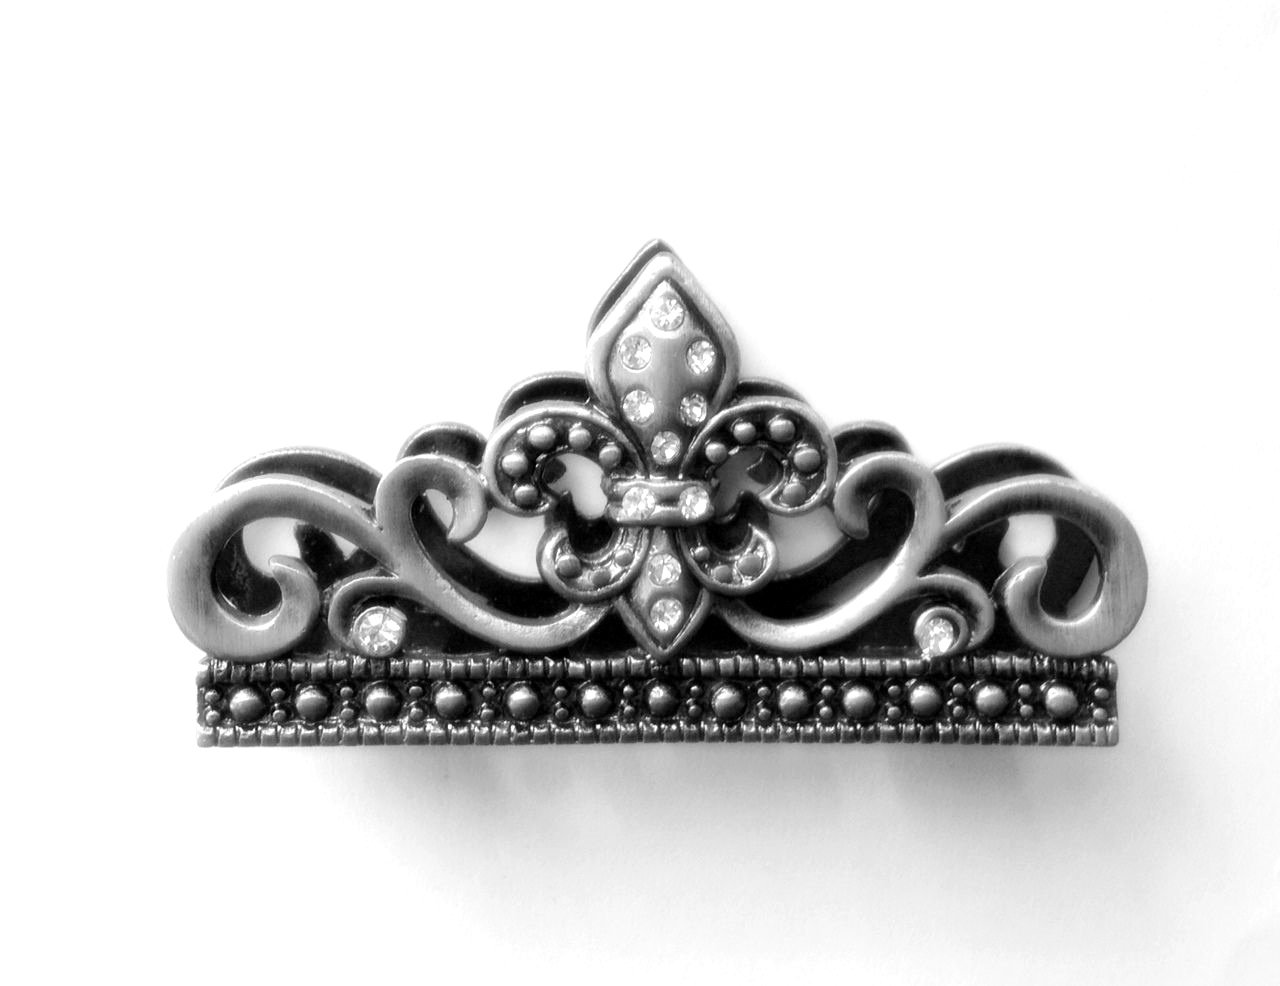 hot sale Business Card Holder (for a desk) - Fleur de lis Design ...